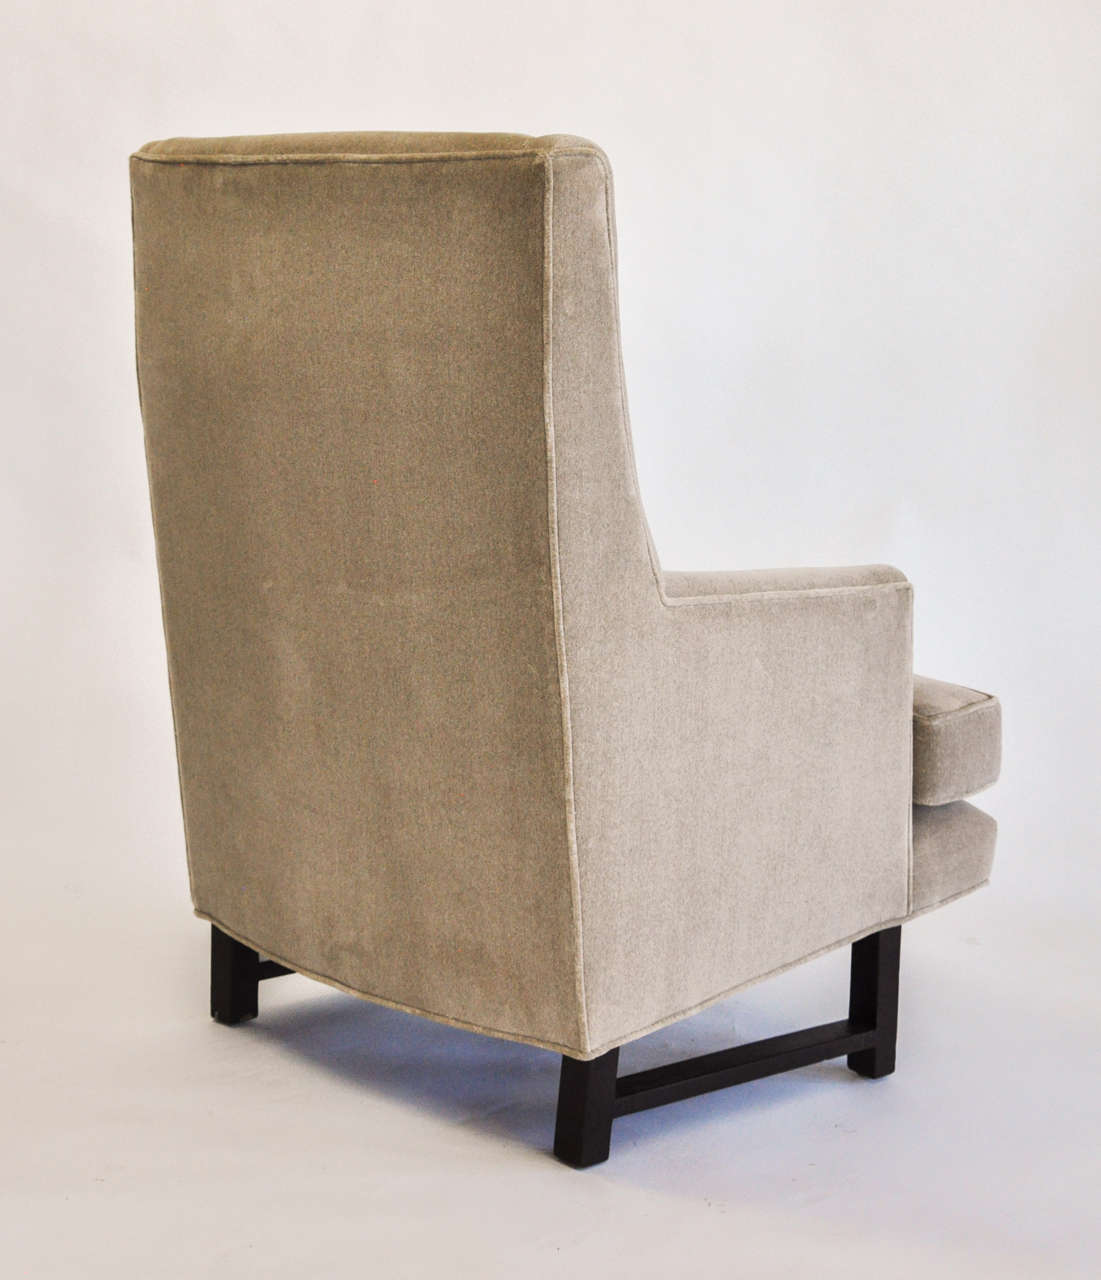 Armchair Designed by Edward Wormley for Dunbar, 1950s - The Exchange Int